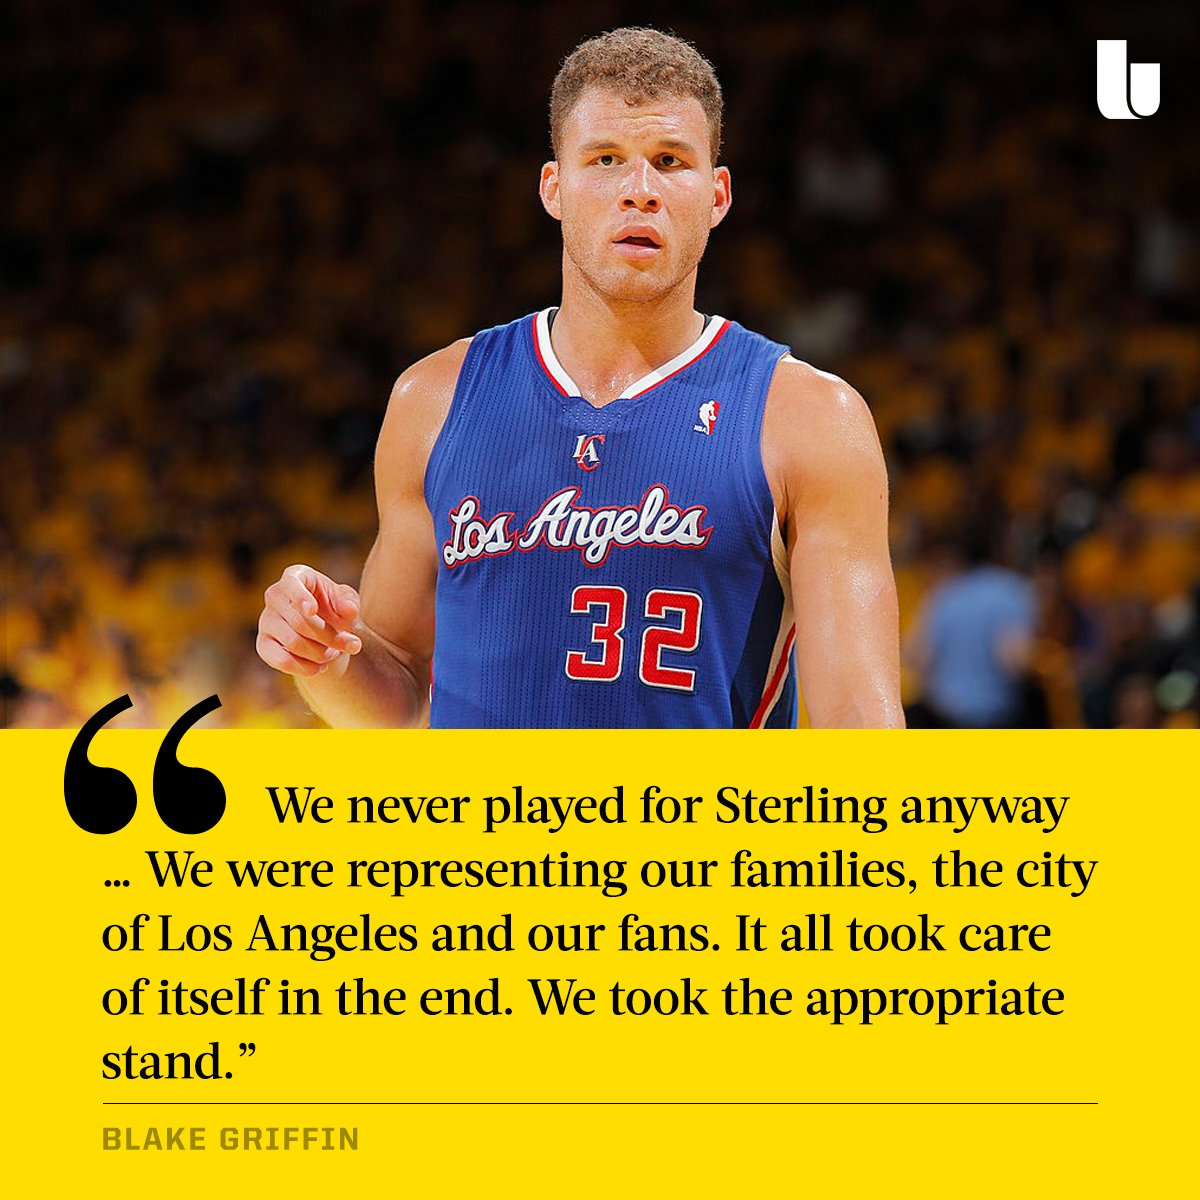 Five years ago, Donald Sterling was banned for life by the NBA for his racist comments in what was one of the strongest penalties in American sports history. @MarcJSpearsESPN takes a look inside the Clippers' final days with Sterling as the owner: theundefeated.com/features/insid…